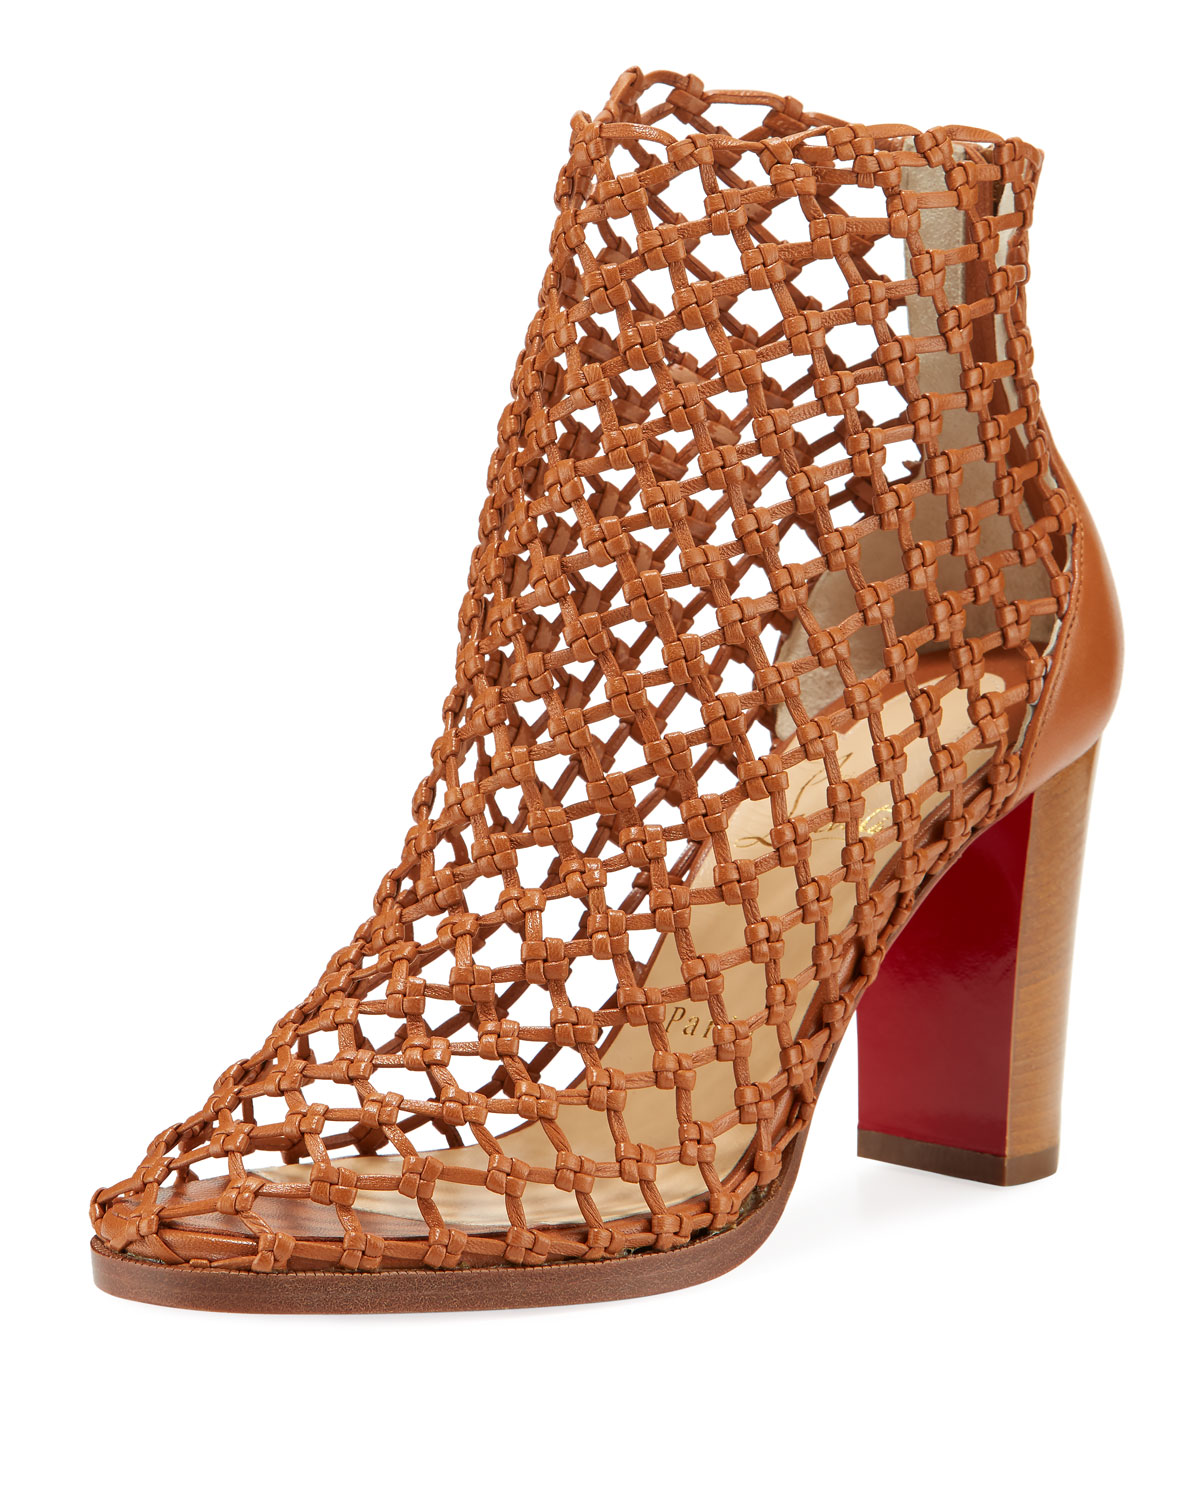 d46b49539c7 Porligatica Caged Red Sole Booties